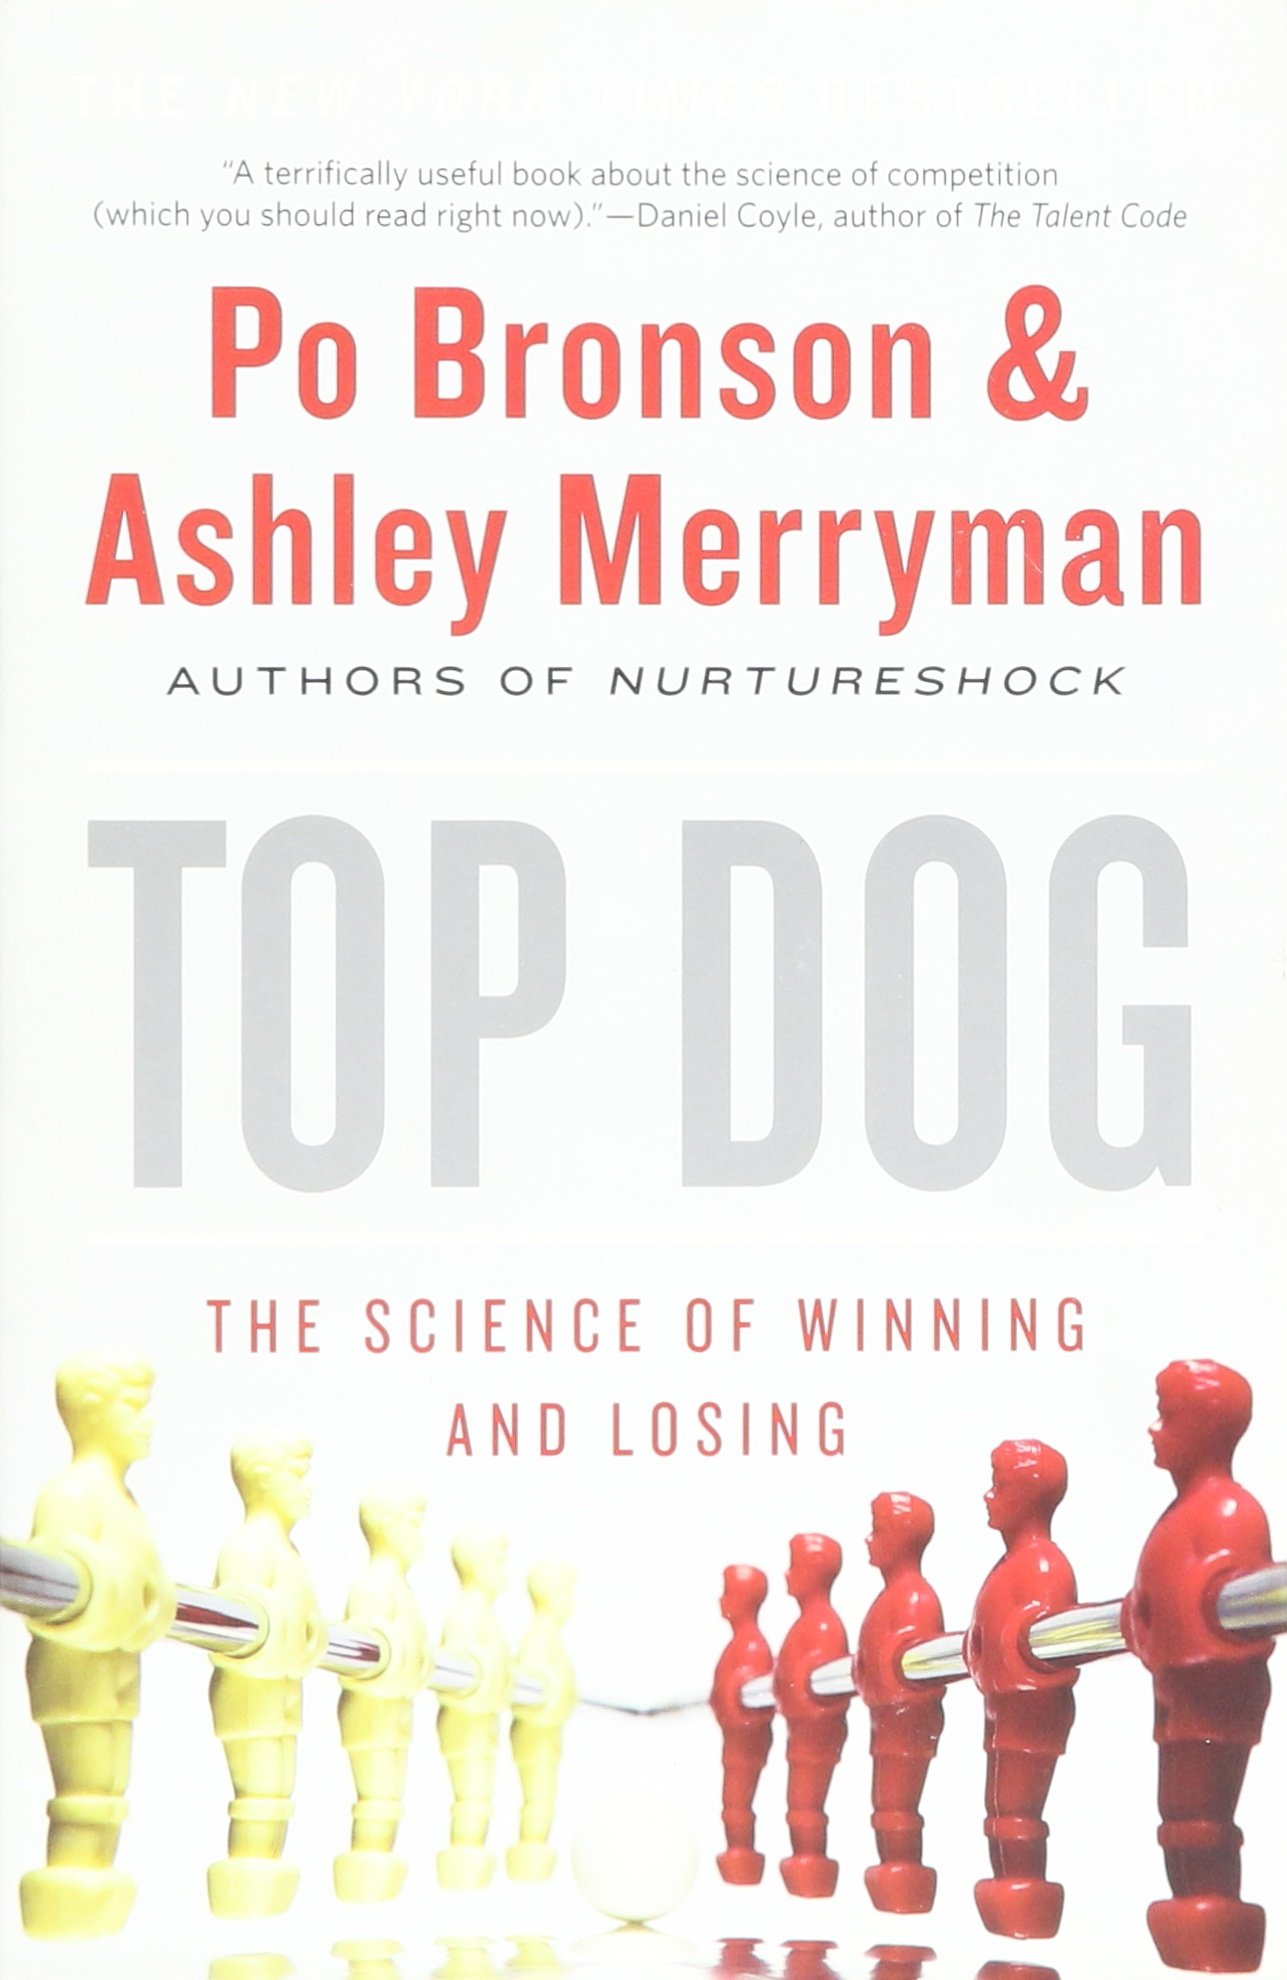 Amazon top dog the science of winning and losing po bronson amazon top dog the science of winning and losing po bronson ashley merryman books fandeluxe Choice Image